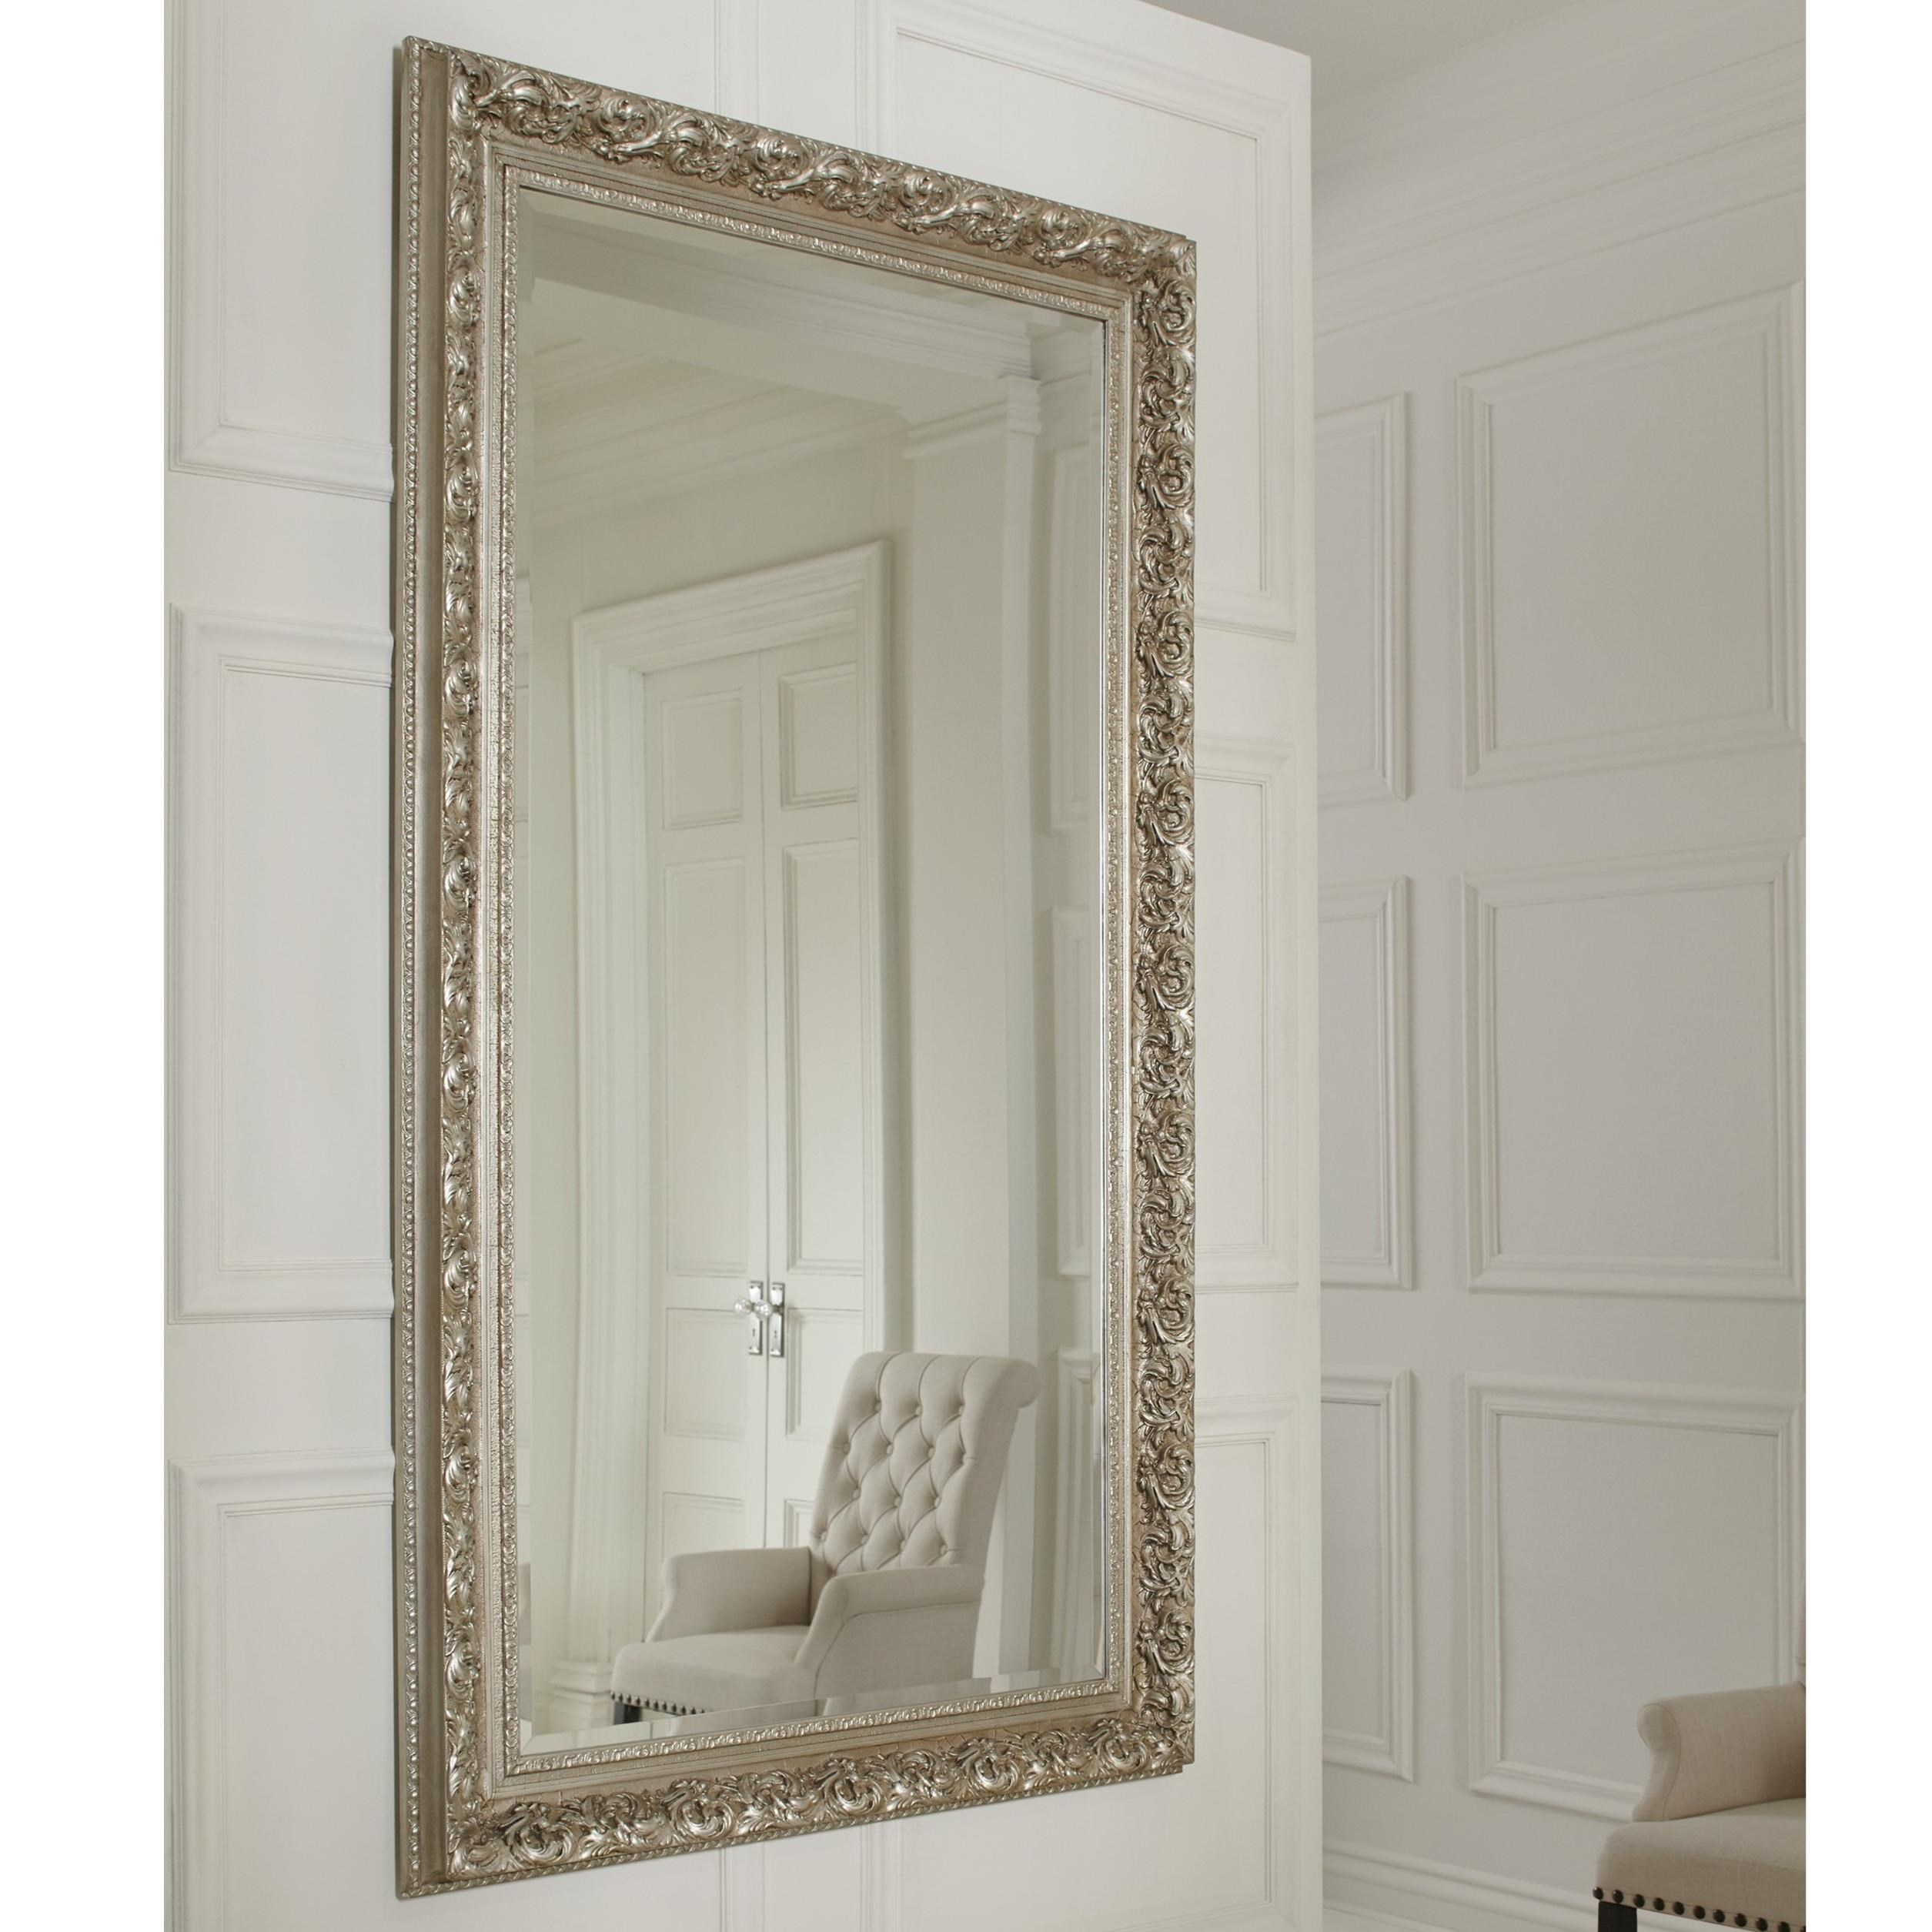 Coaster Accent Mirrors Framed Wall Mirror - Item Number: 903113